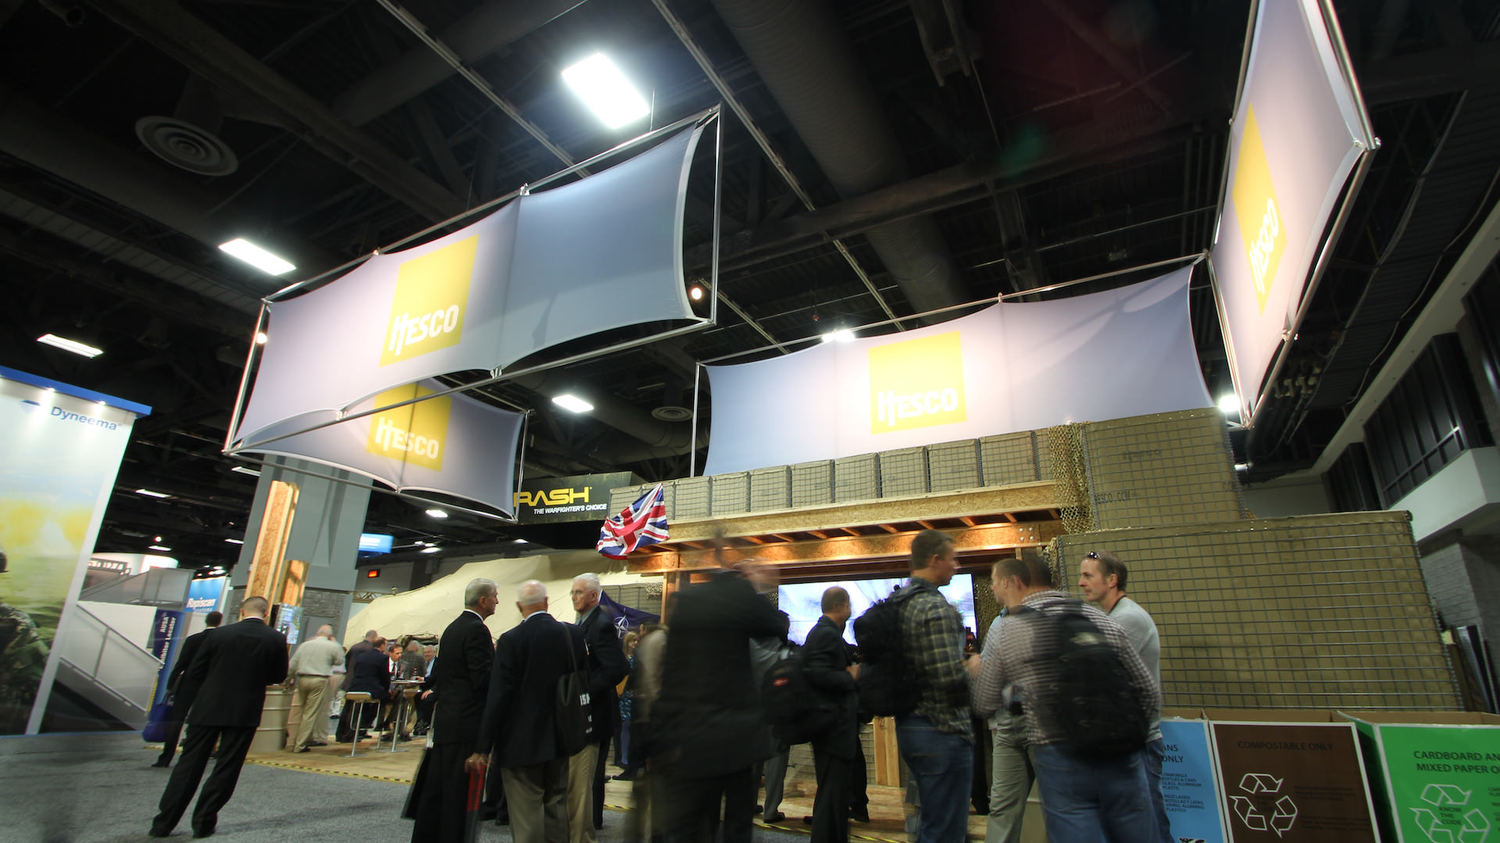 Exhibition Stand Themes : Themed exhibition stand bespoke exhibition design and build